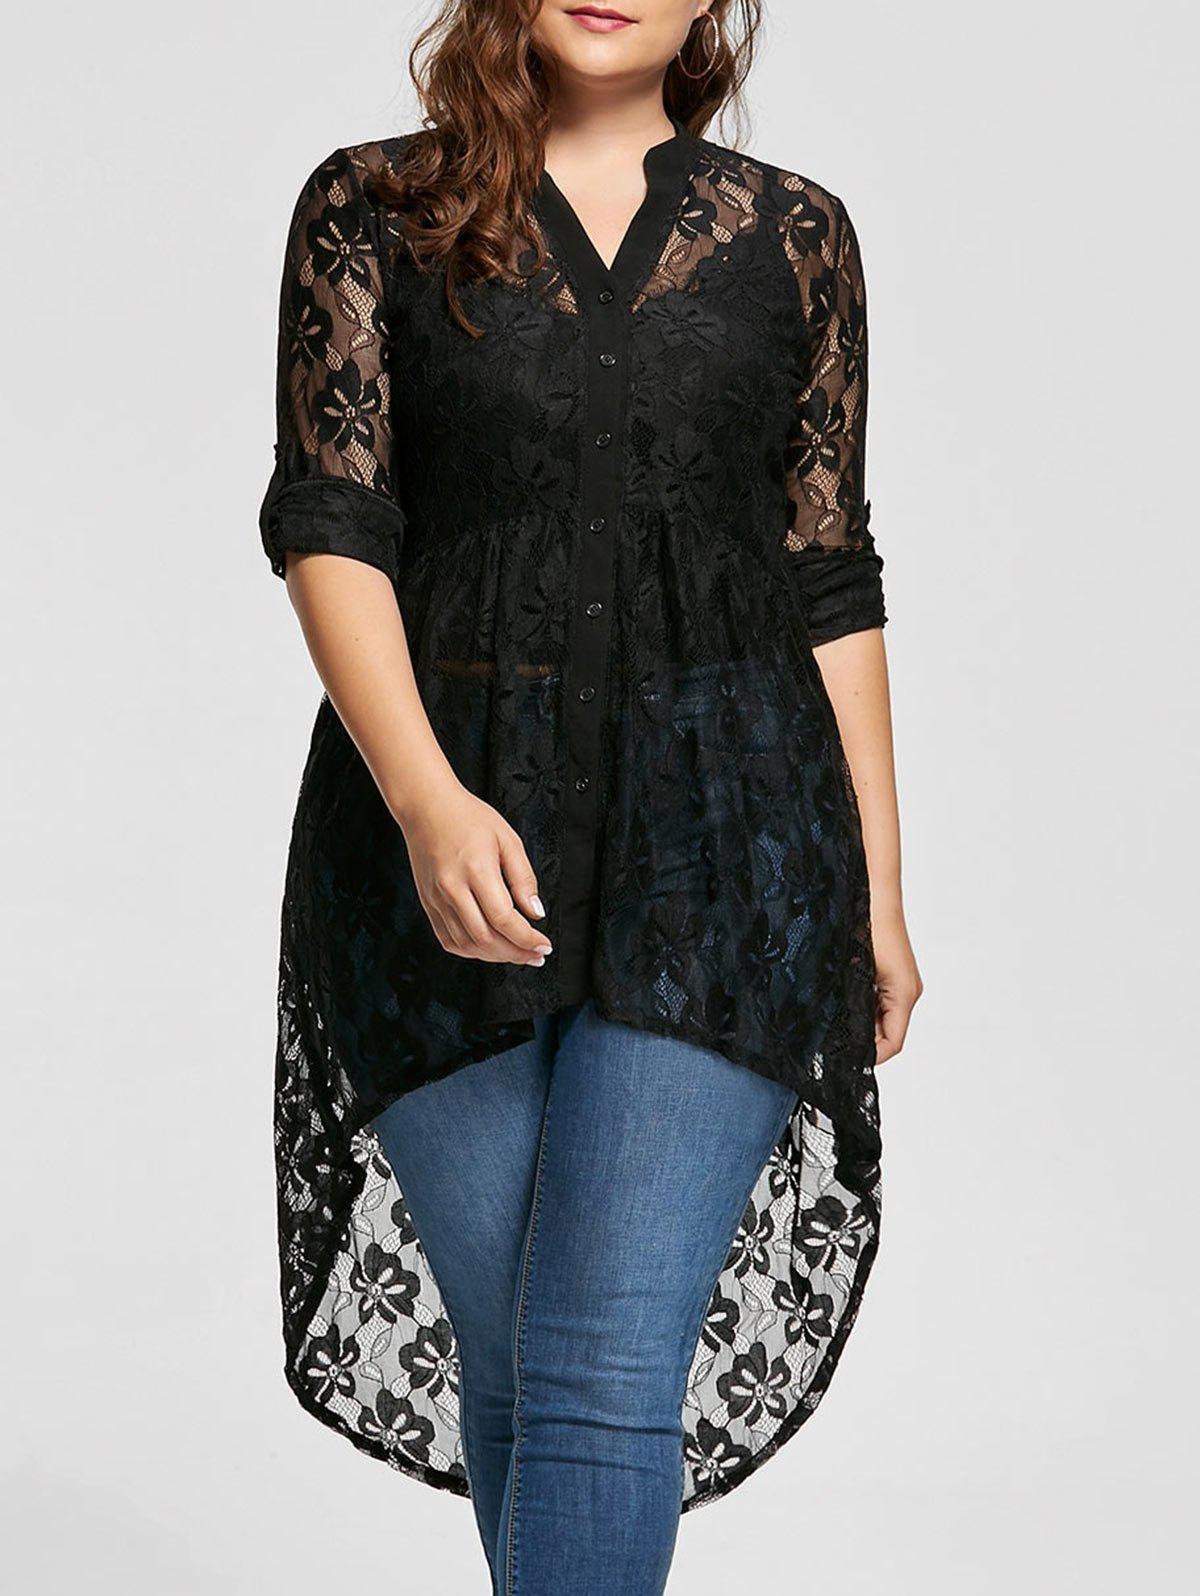 Hot High Low Lace Long Sleeve Plus Size Top